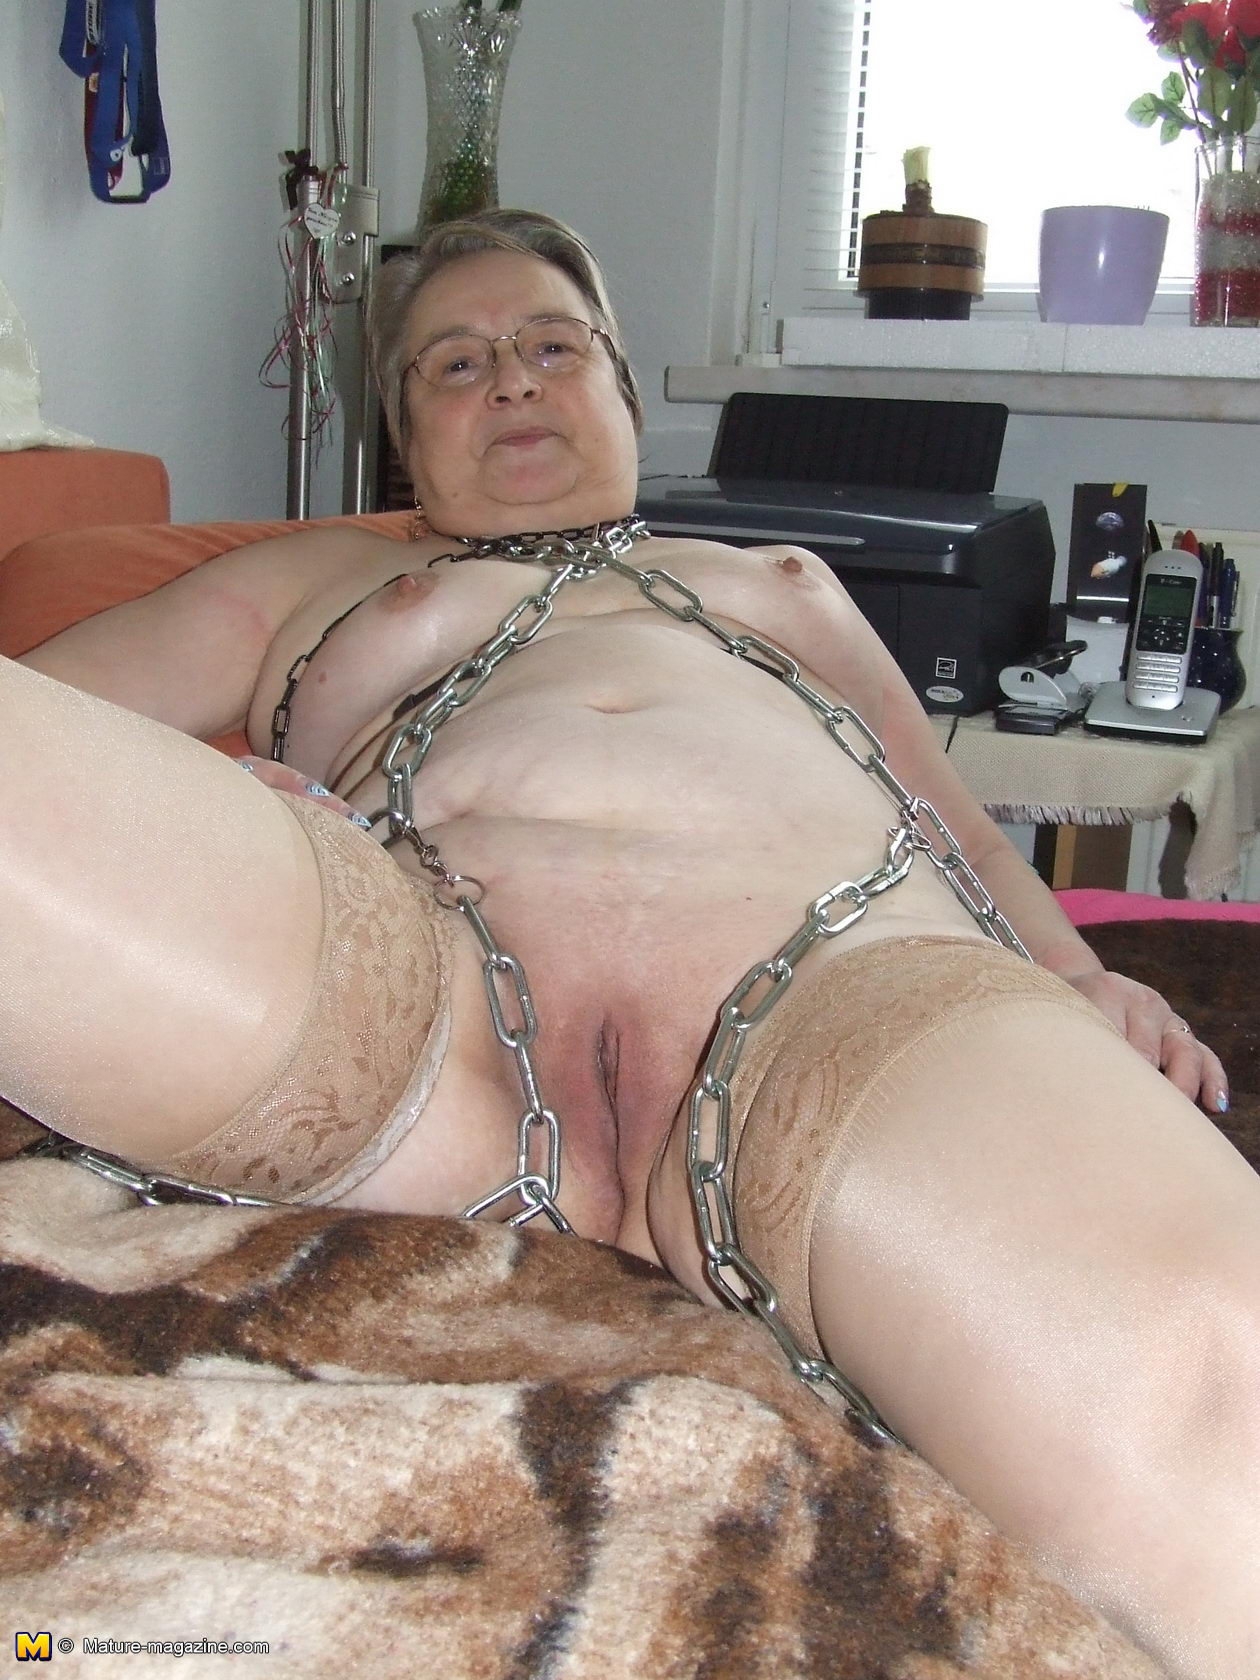 Not understand Mature women tied up bondage photos apologise